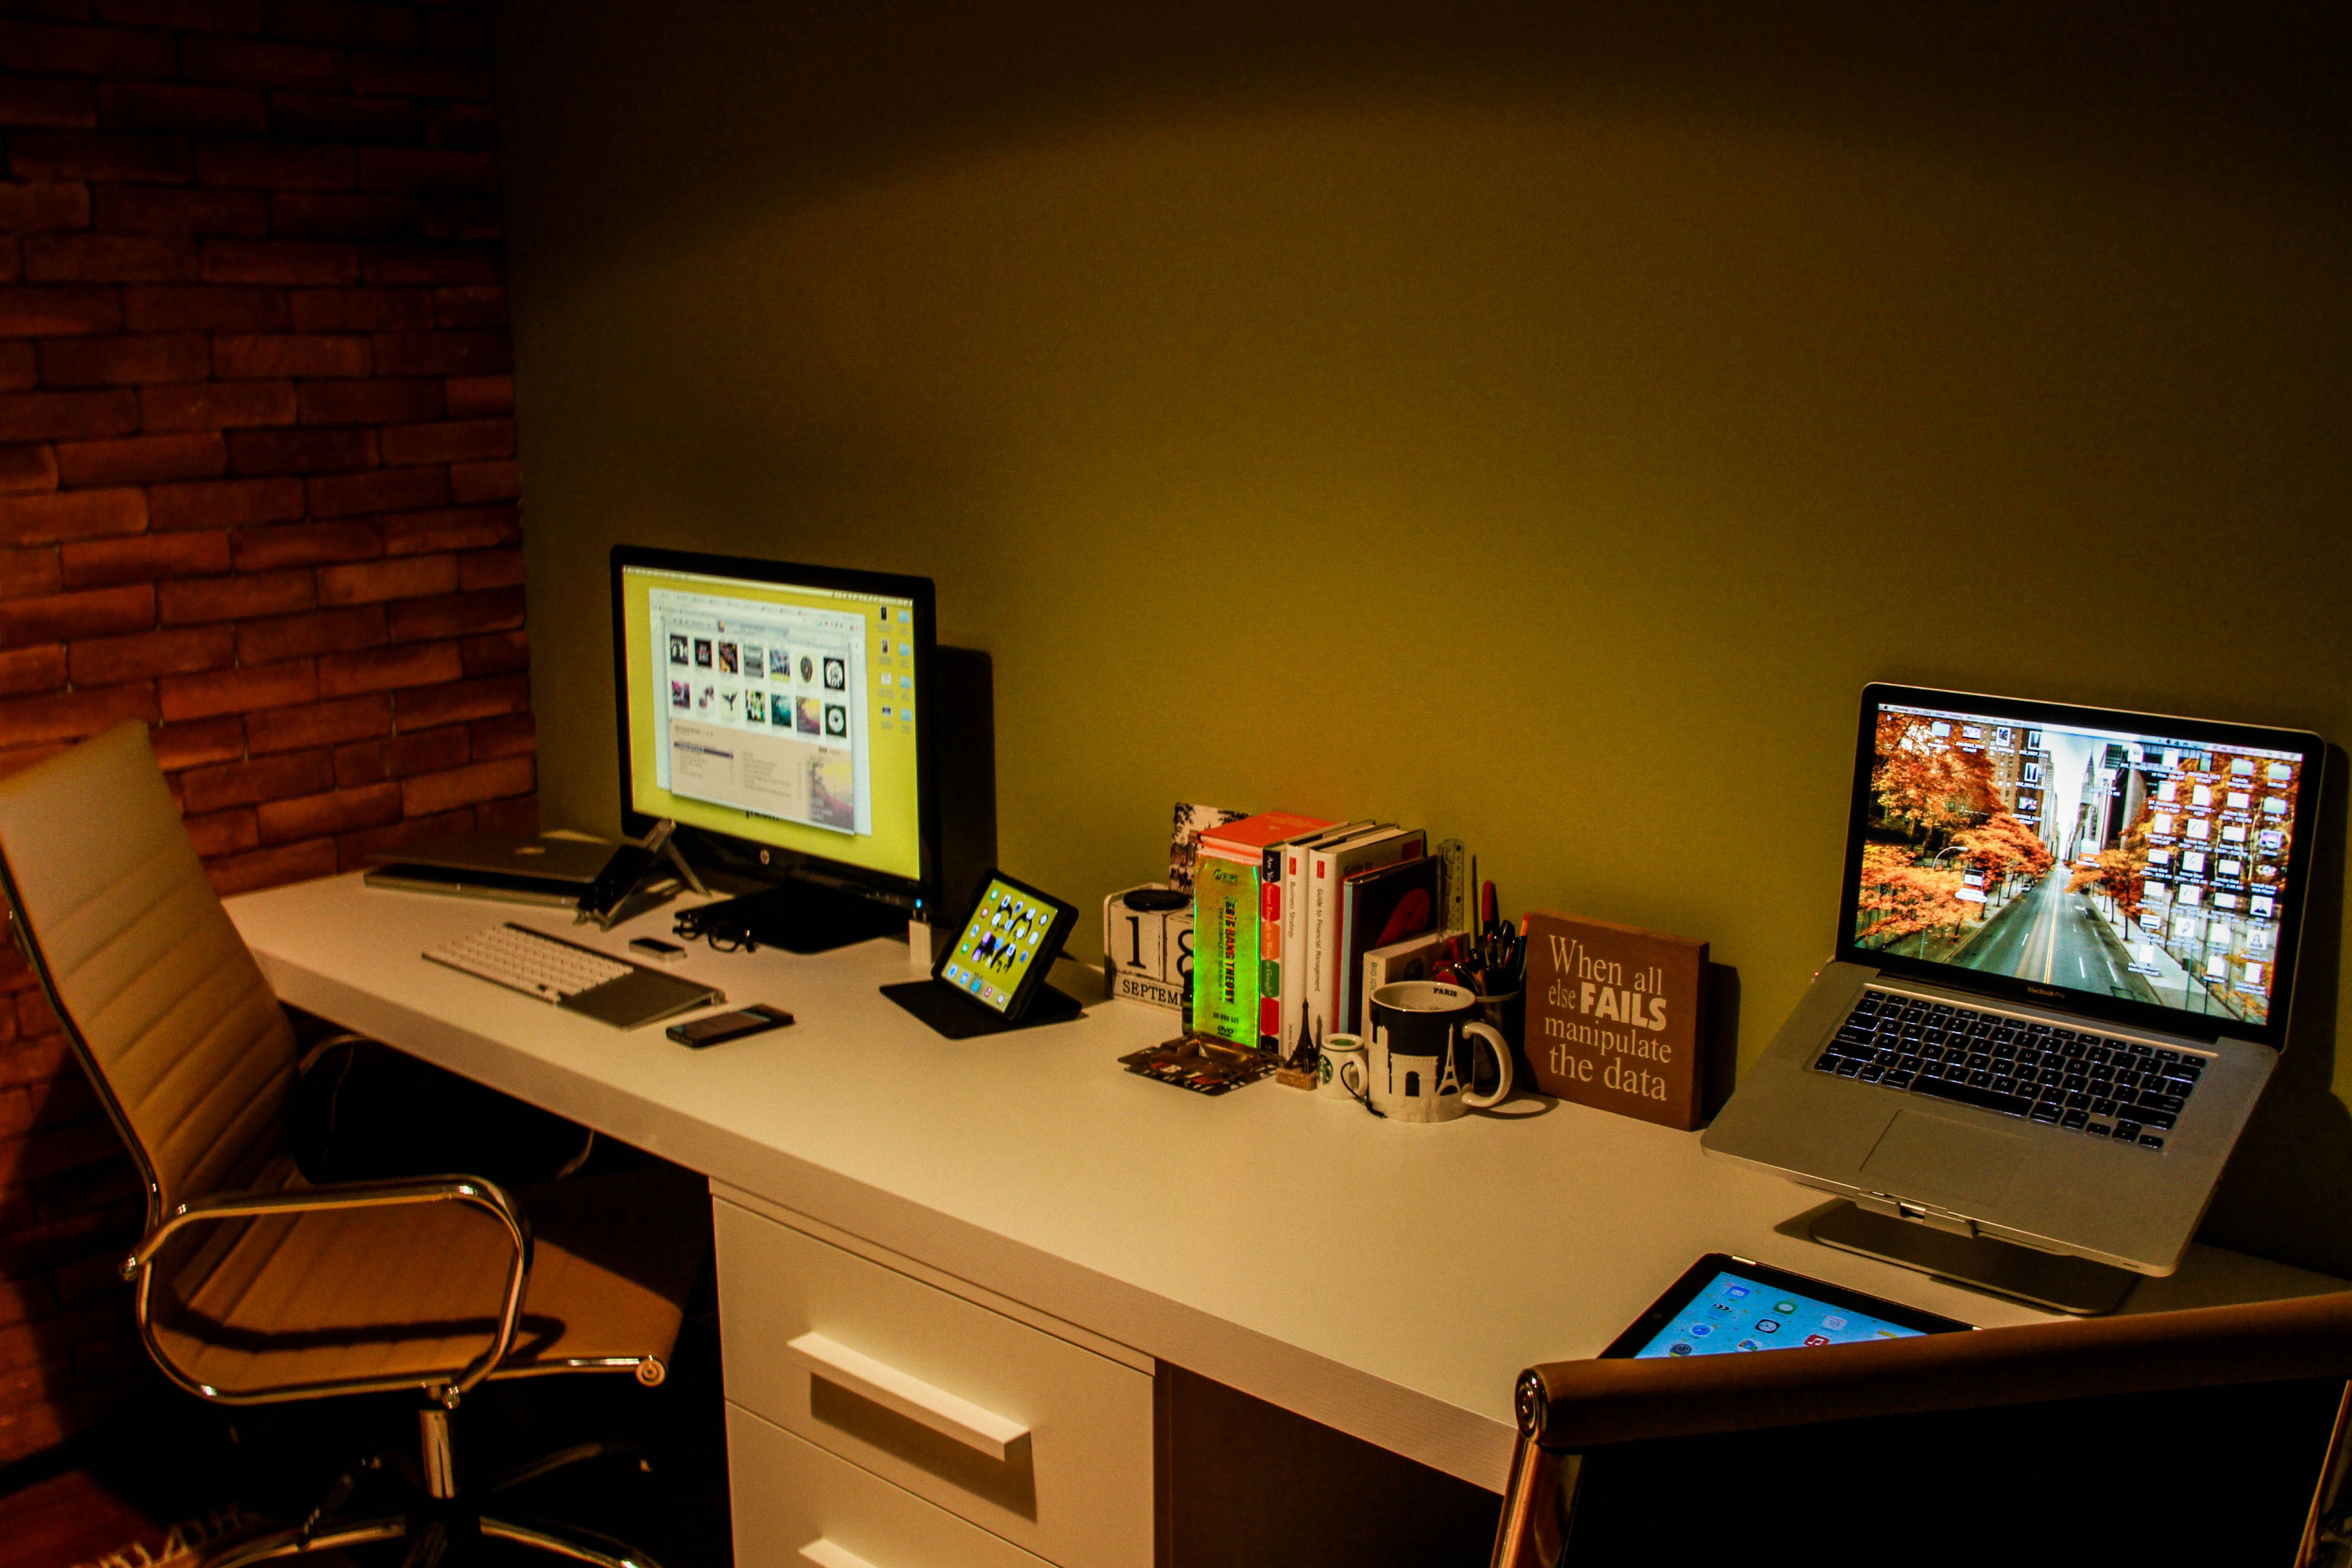 This is my home office still working on getting it to look better.